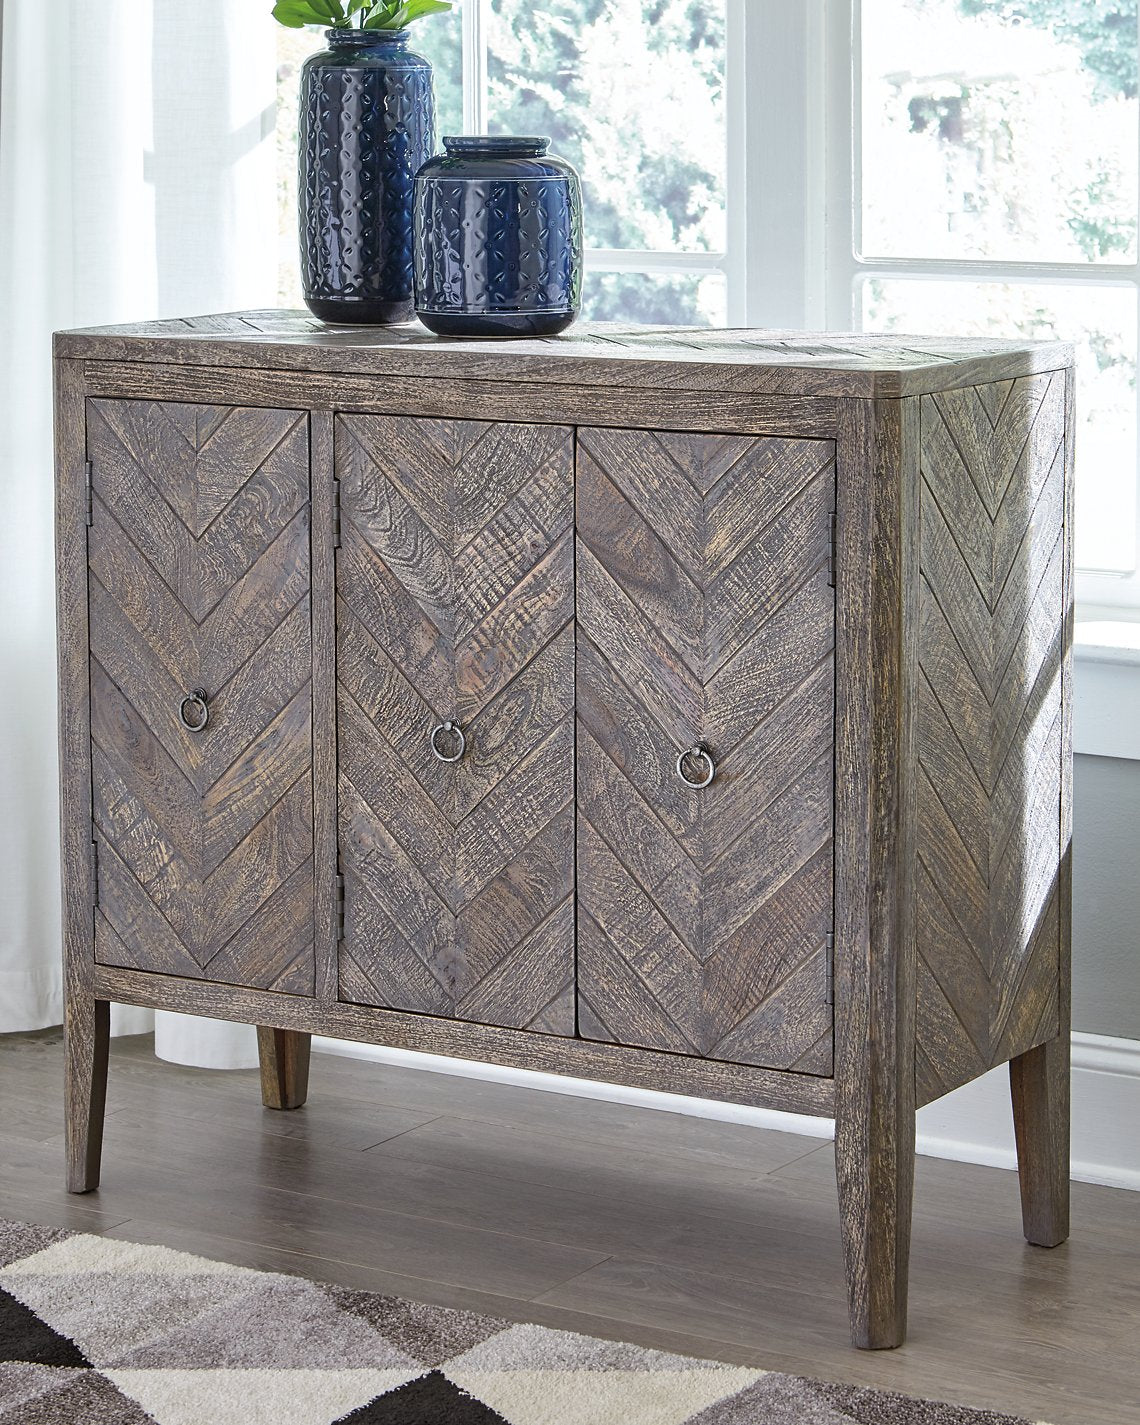 Boyerville Signature Design by Ashley Cabinet image